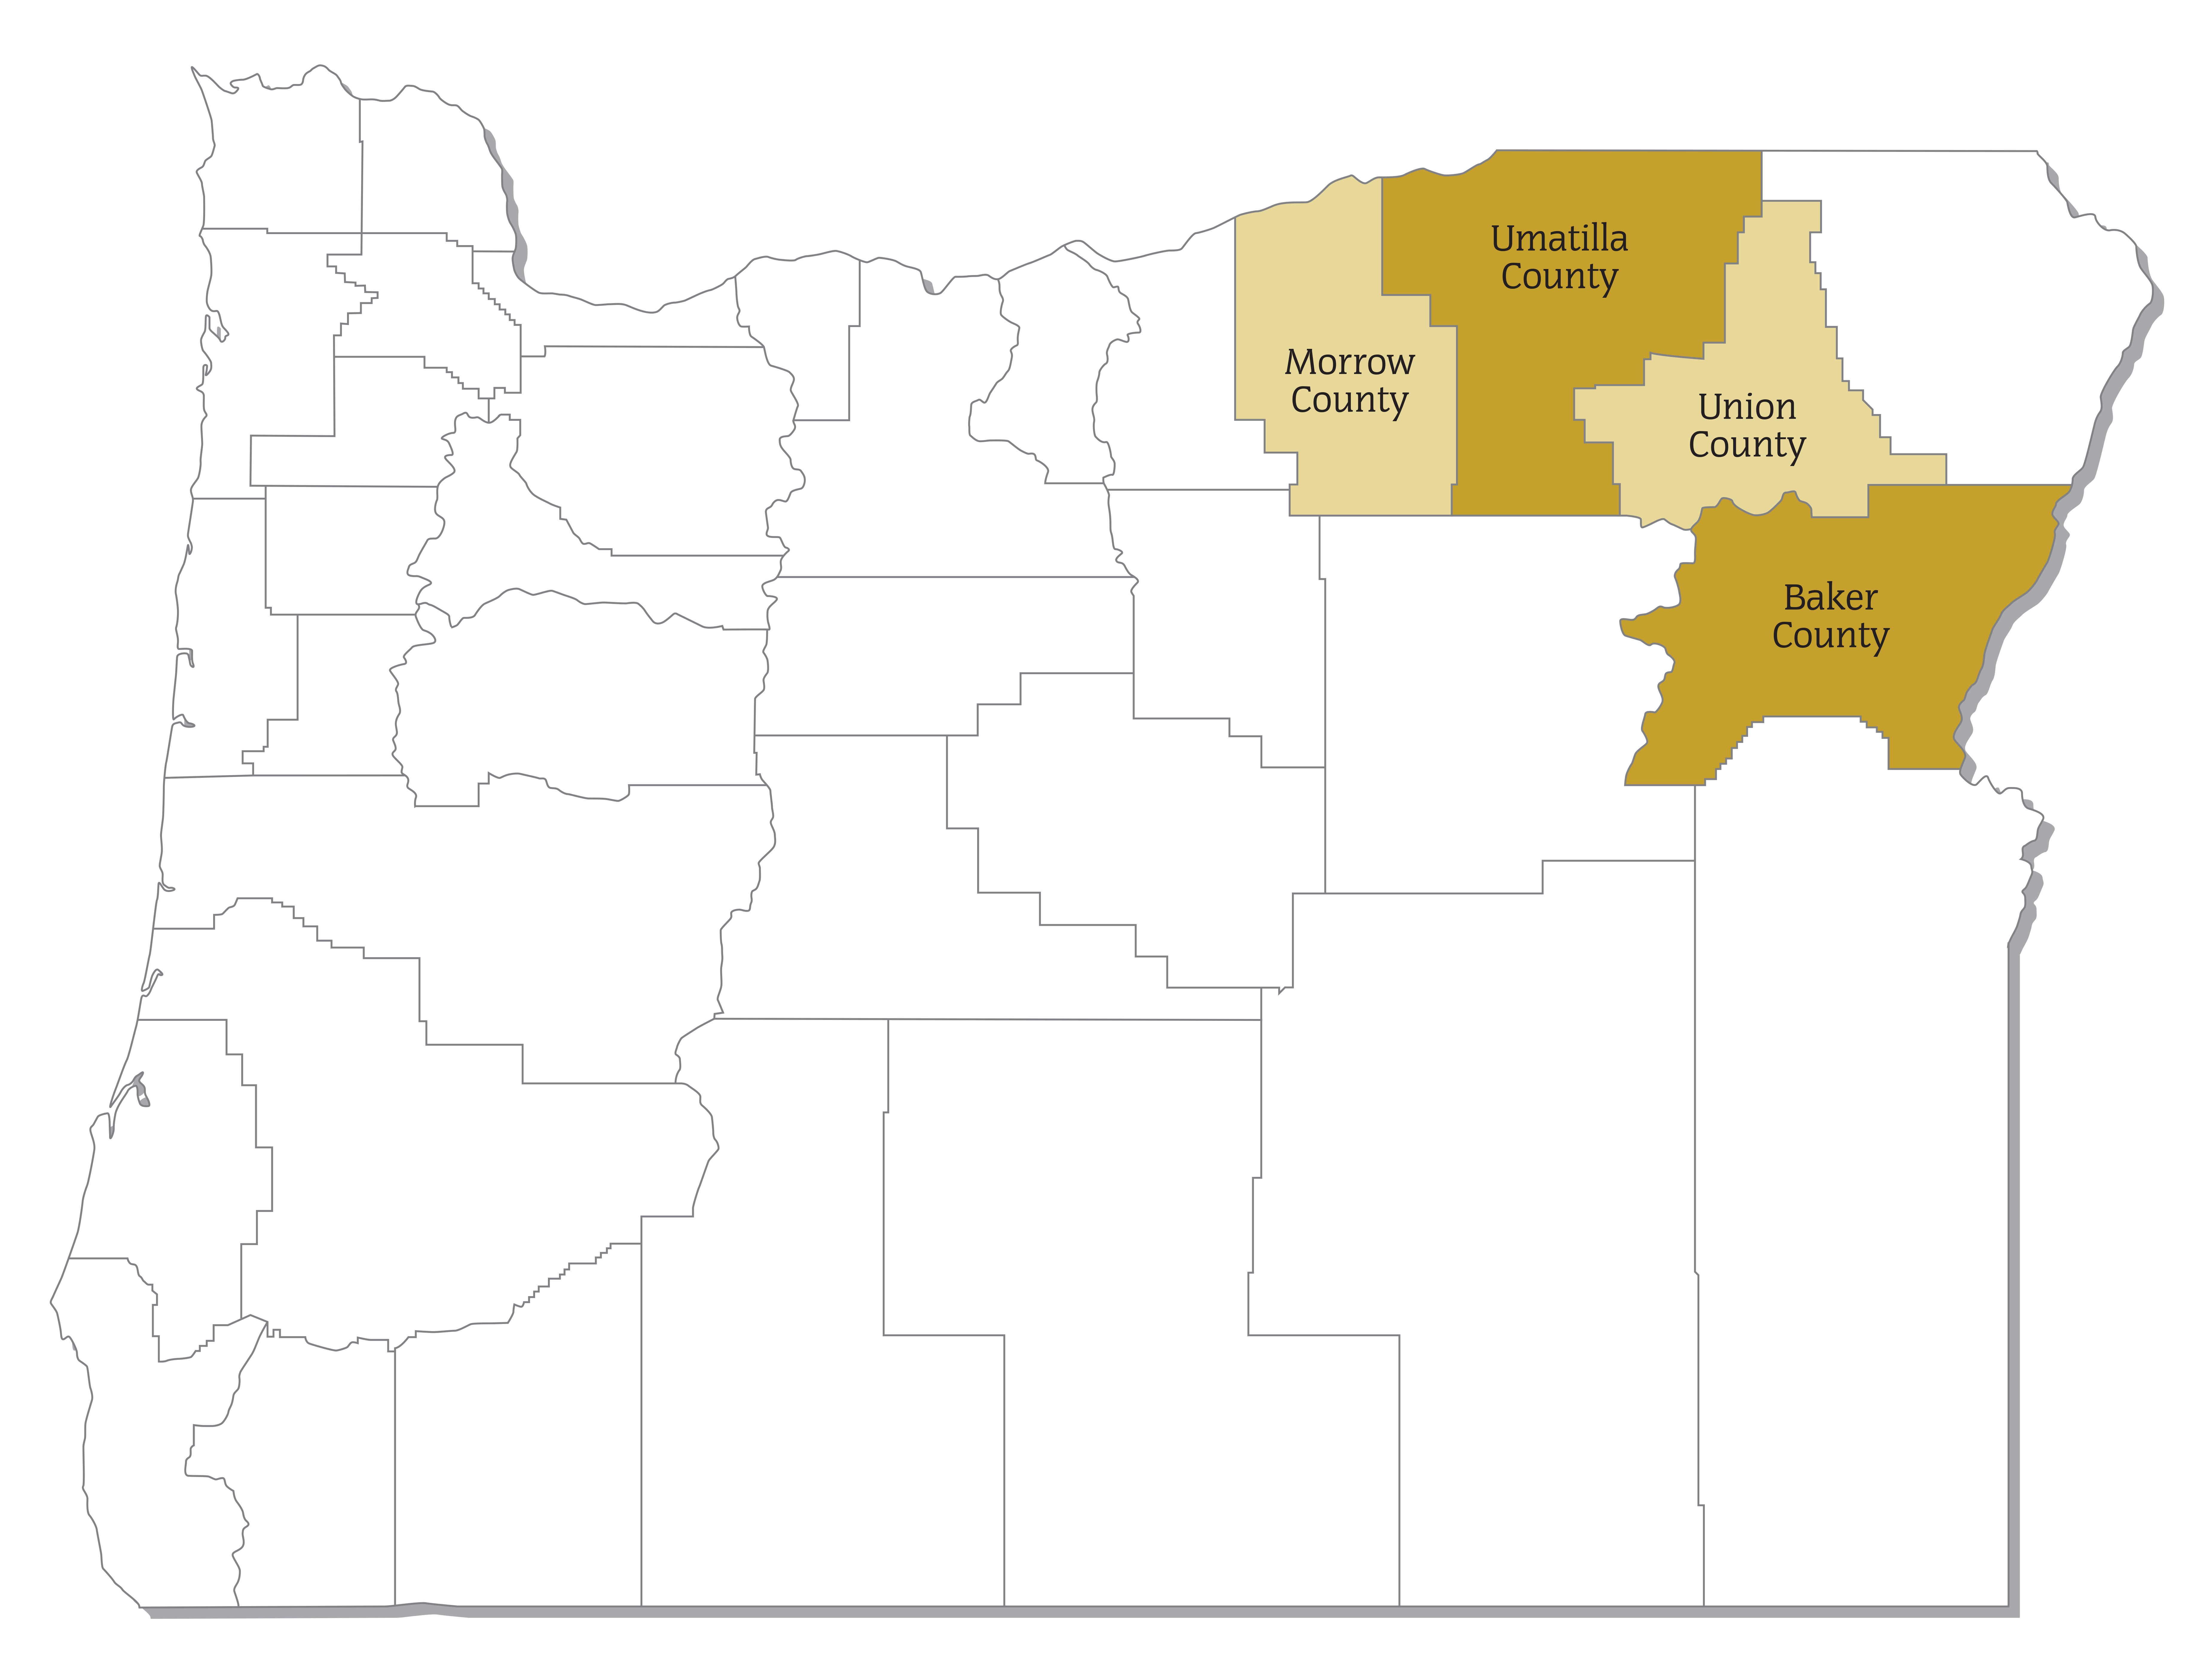 Oregon Trail REN Counties Served